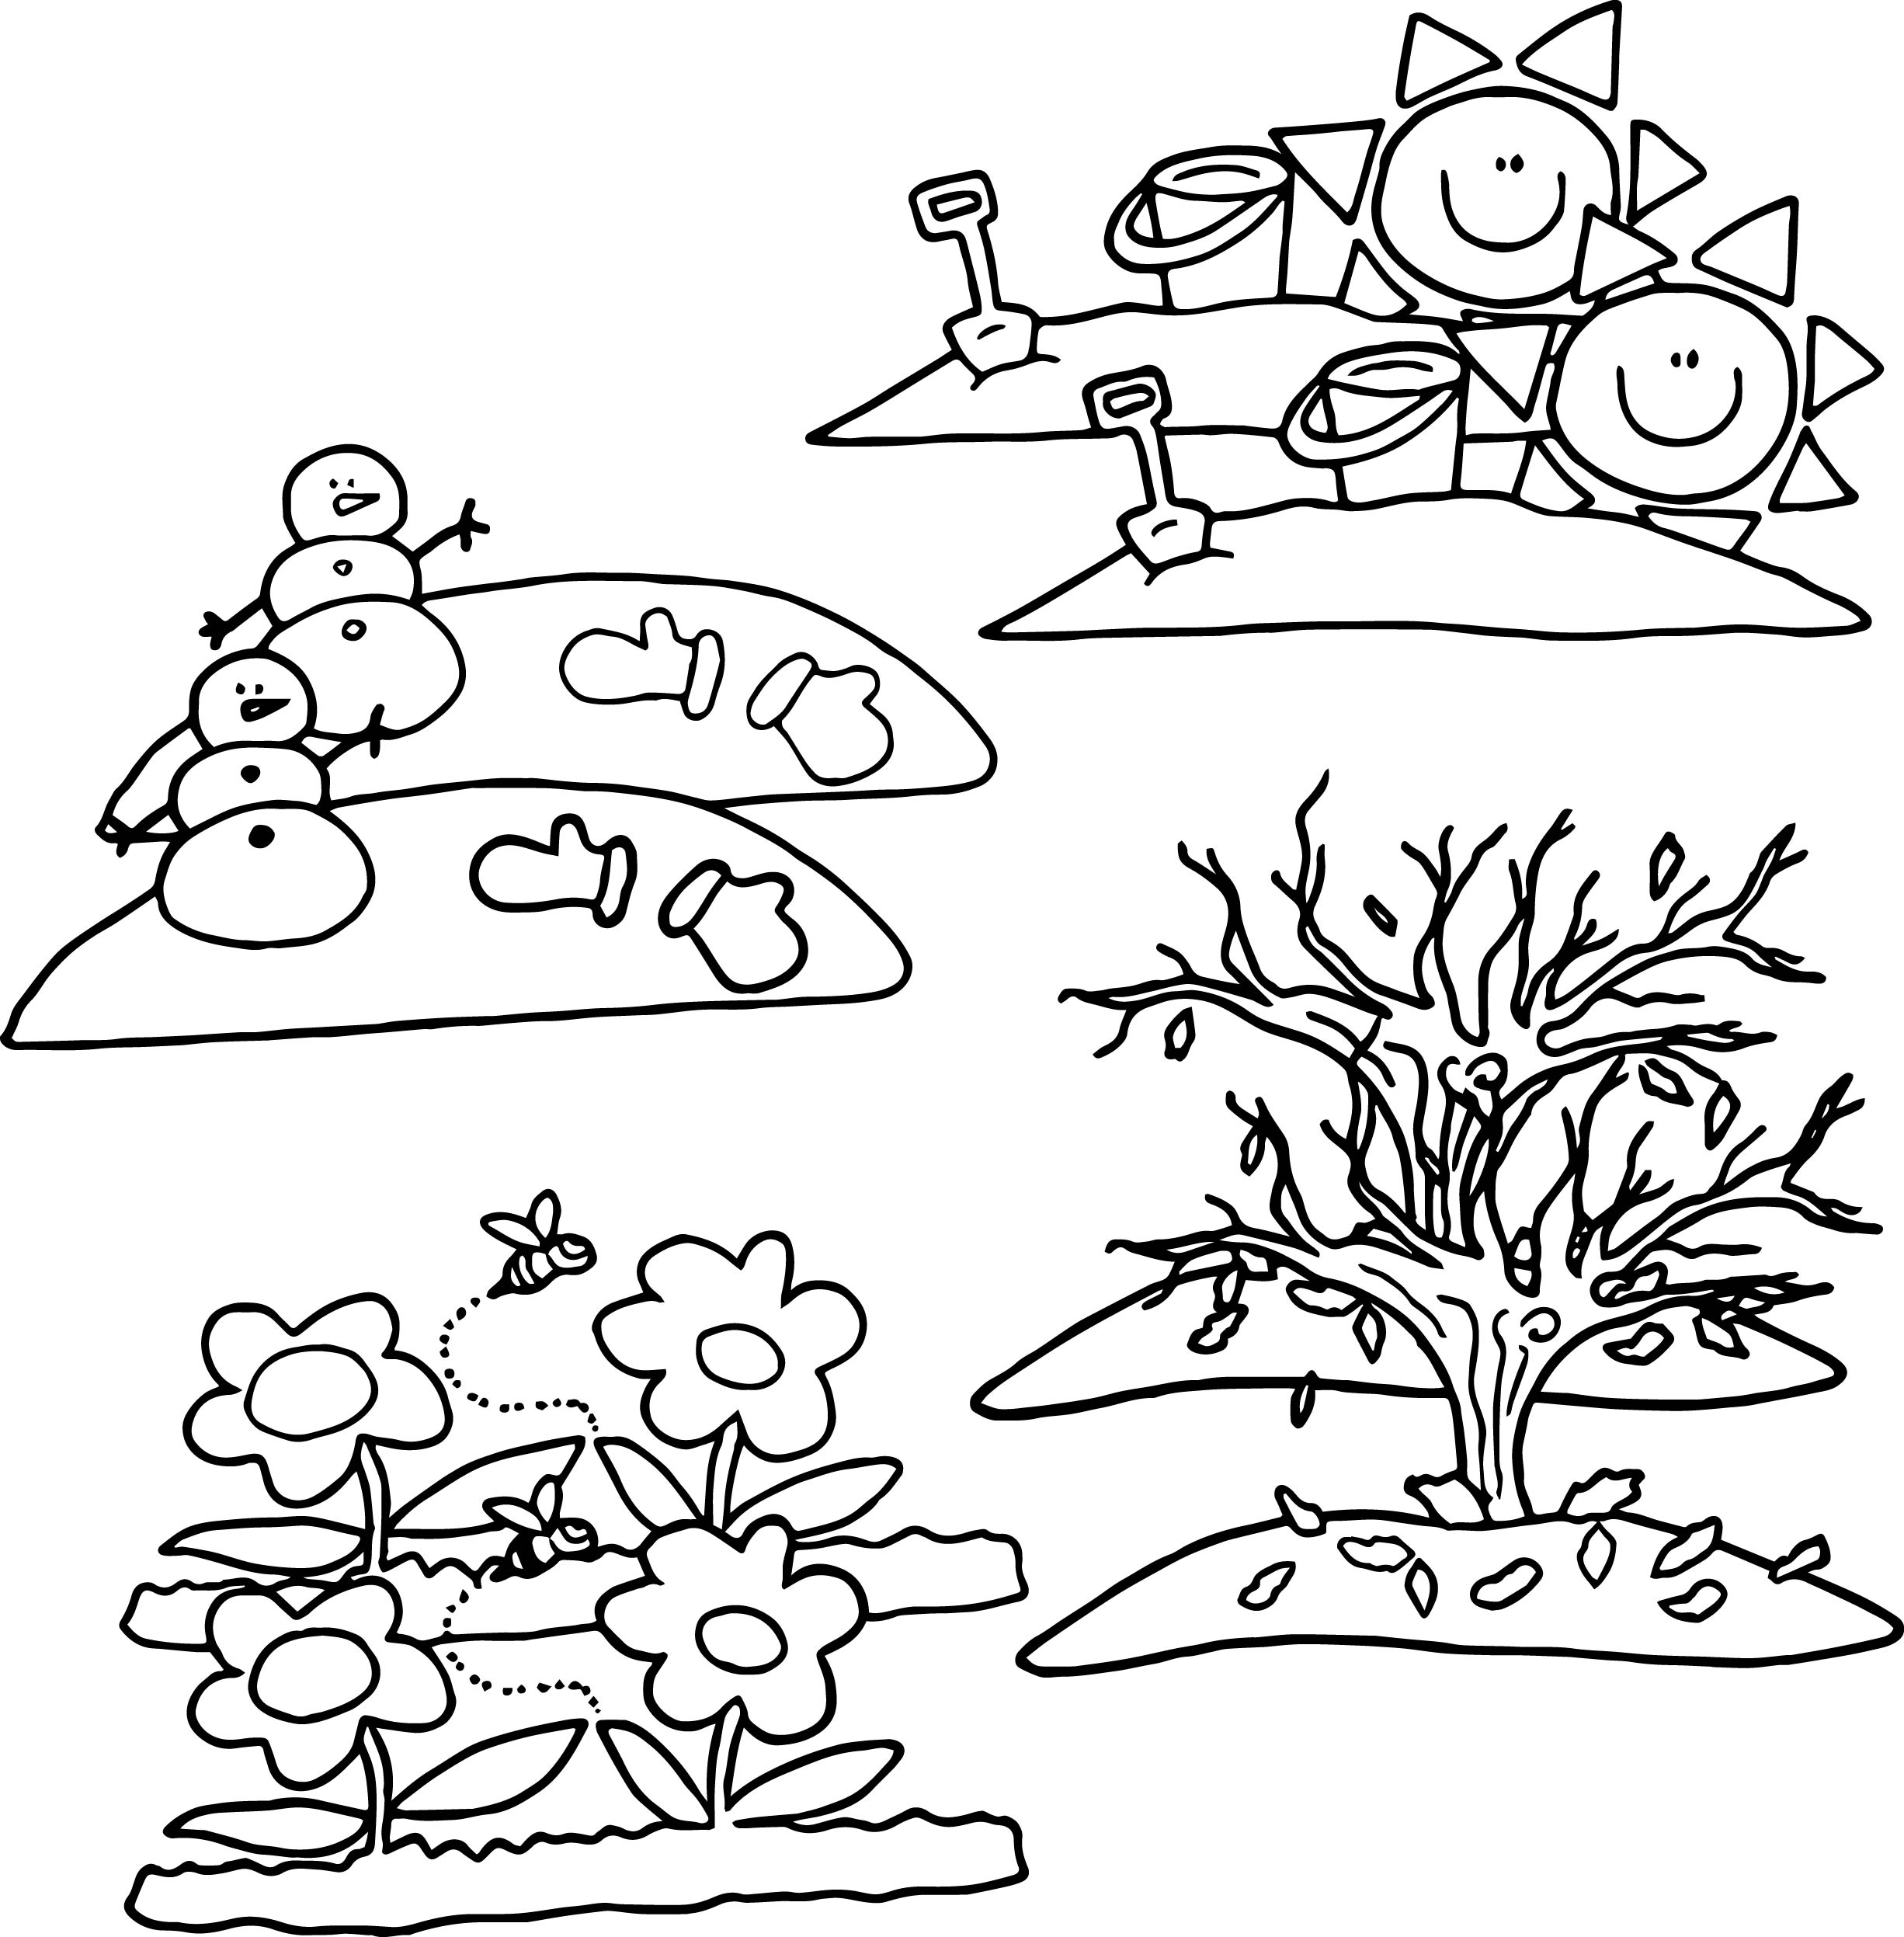 Coloring pages 4 wheeler -  Wheeler 4 Seasons Cartoon Coloring Page Download